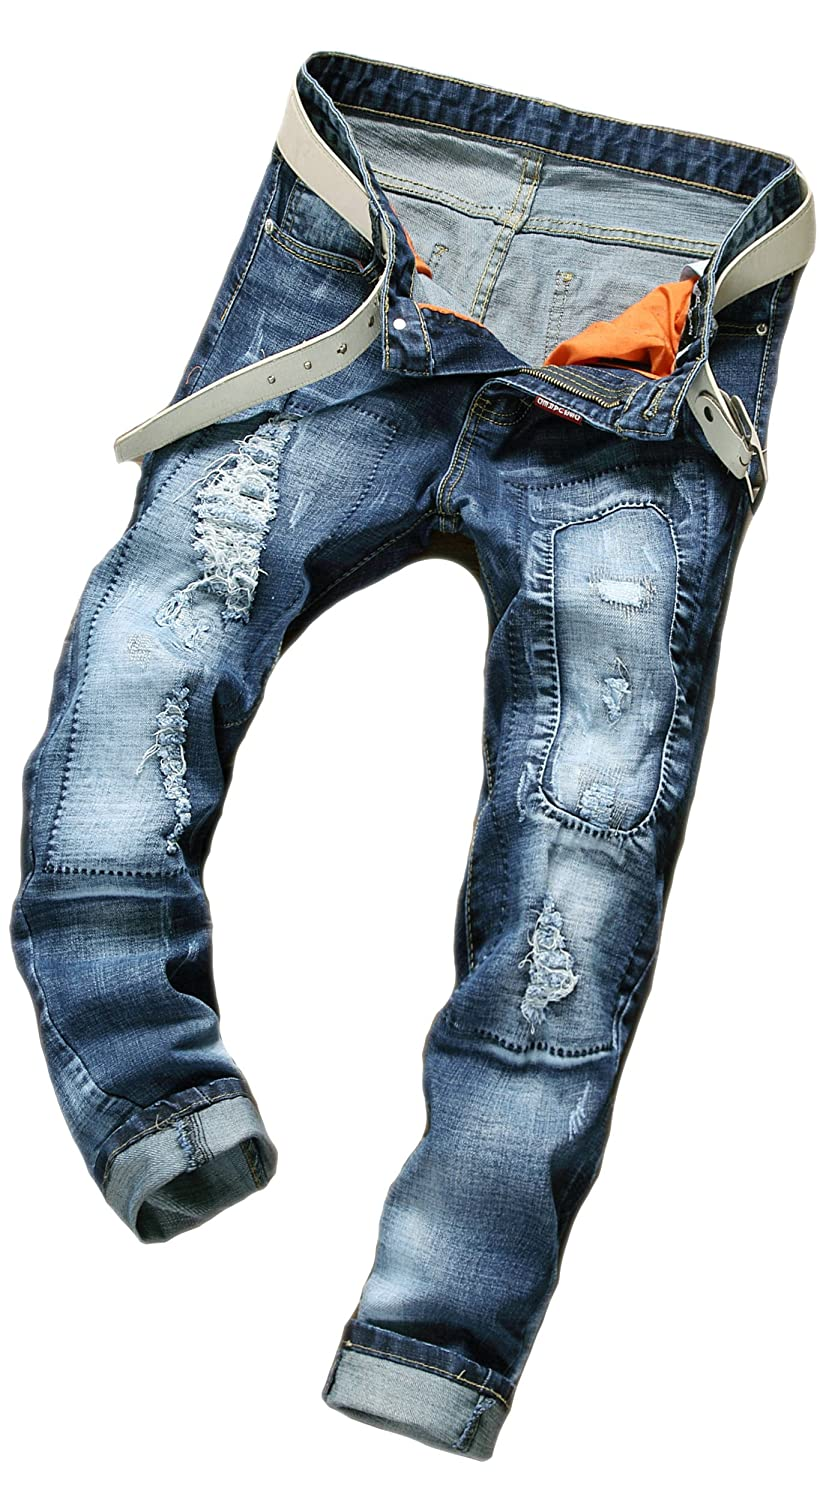 BiePa Fashion Mens Jeans Casual Jeans Hip hop Denim Pants Trousers